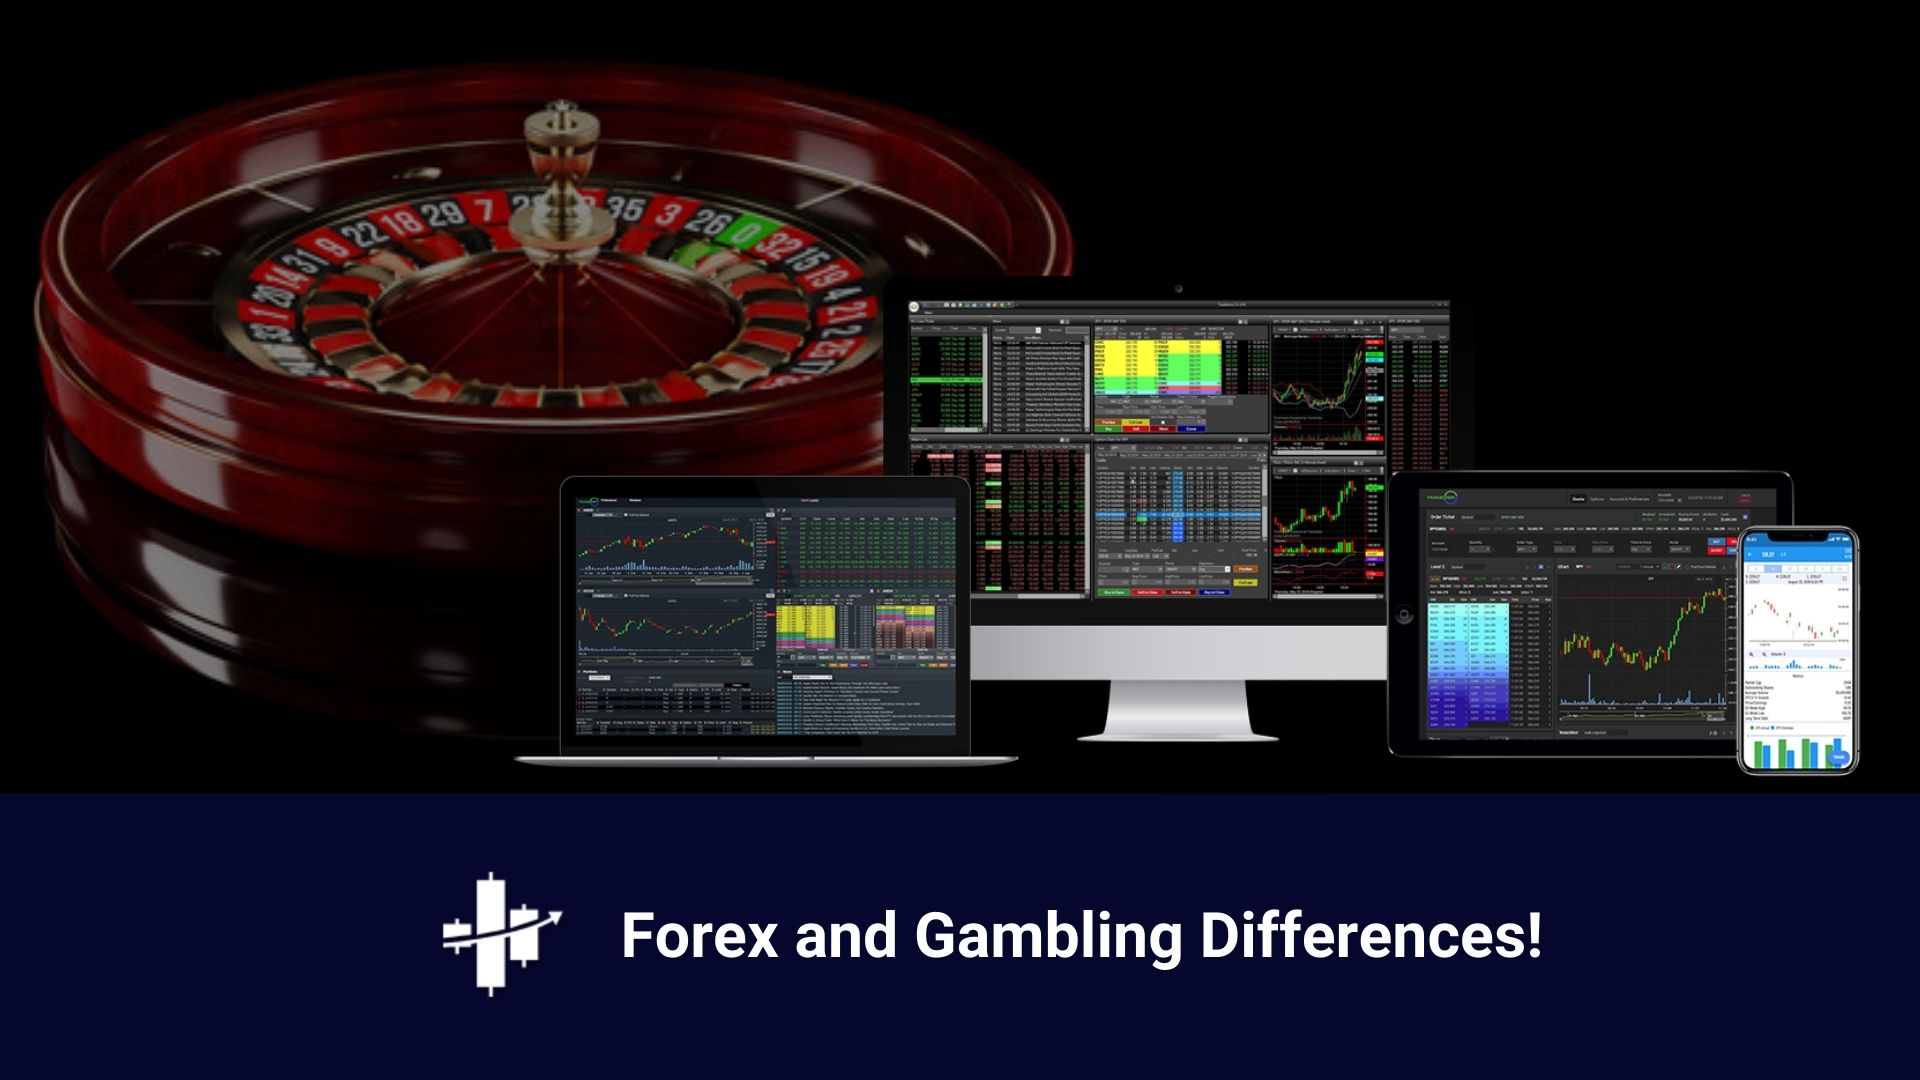 forex investment and gambling